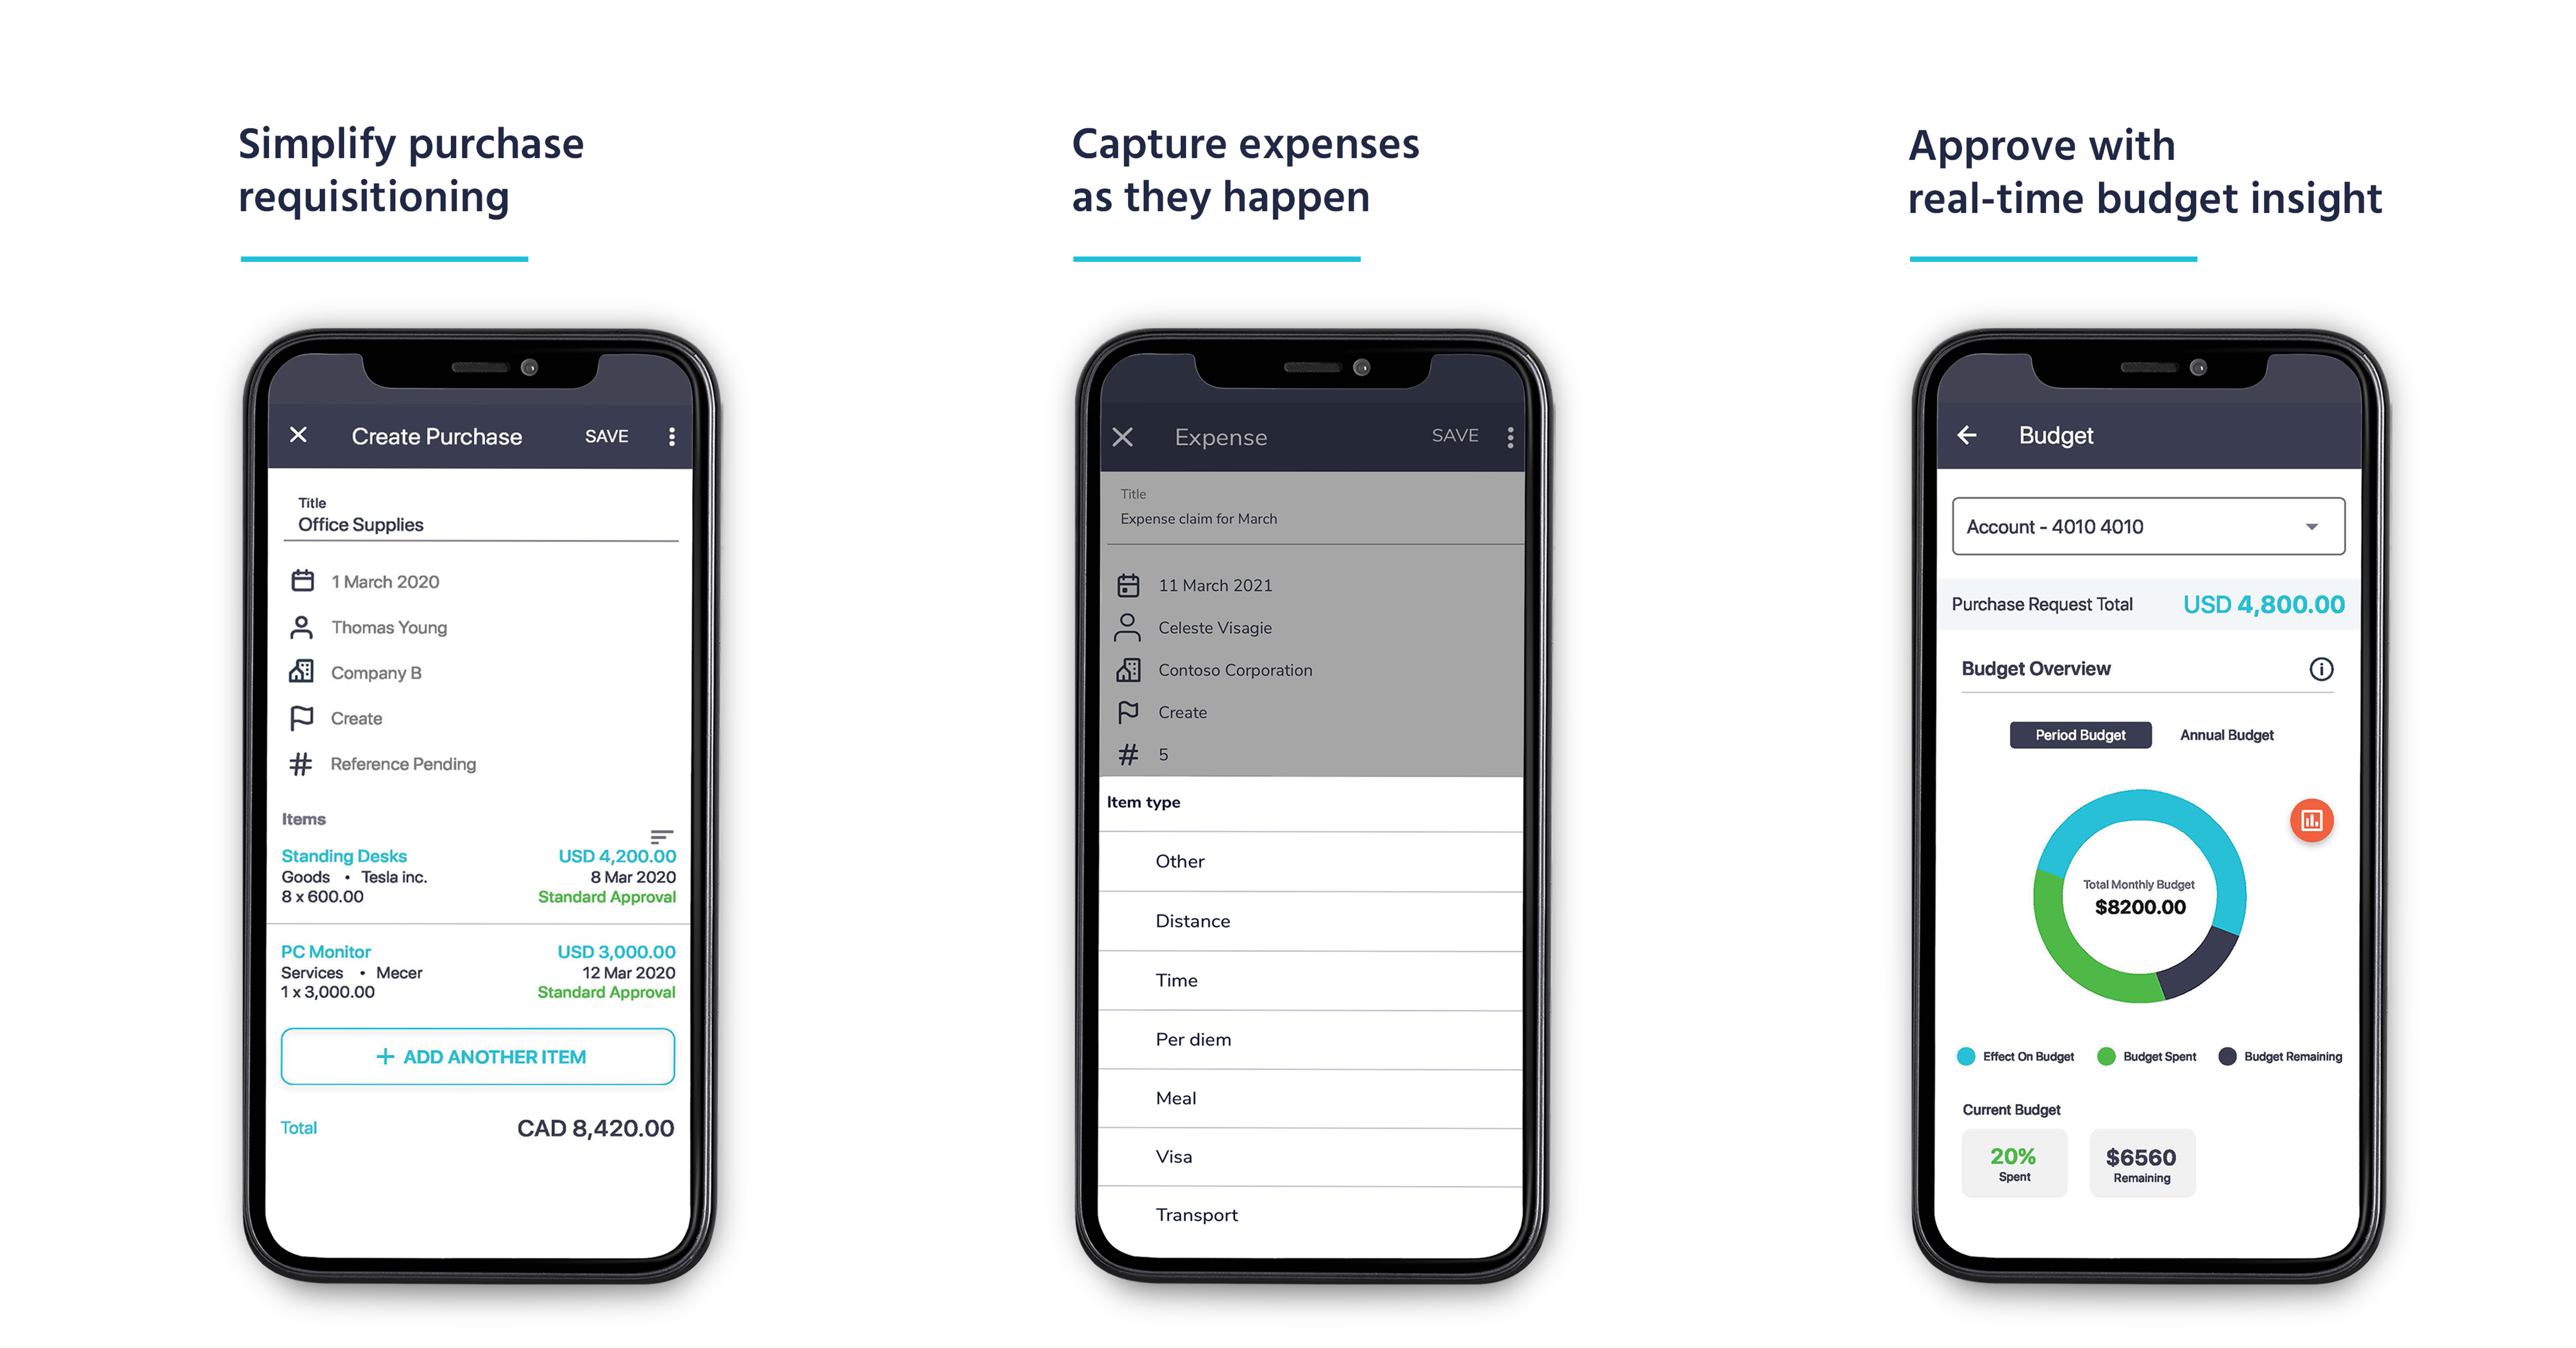 Mobile app for purchasing, expenses and approvals with budget insight